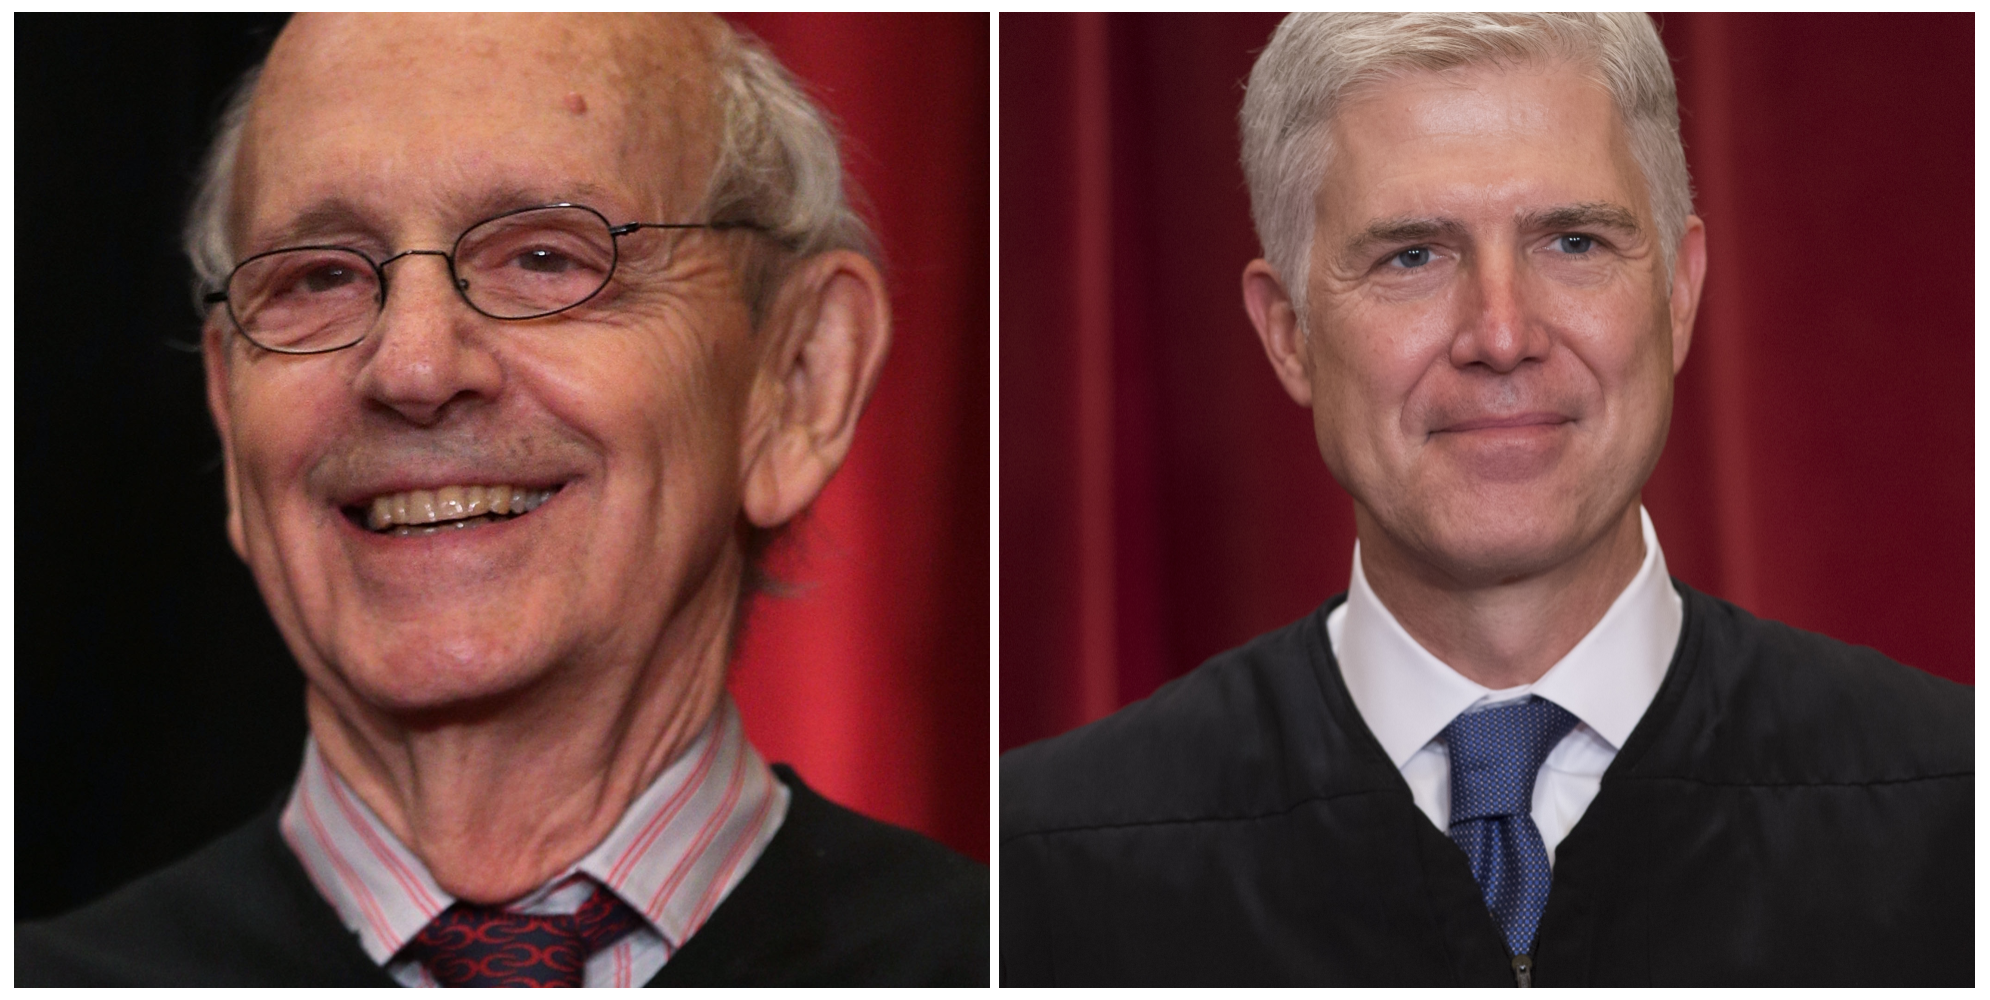 Justice Stephen Breyer (L) and Justice Neil Gorsuch (R). (Photos via Getty Images)